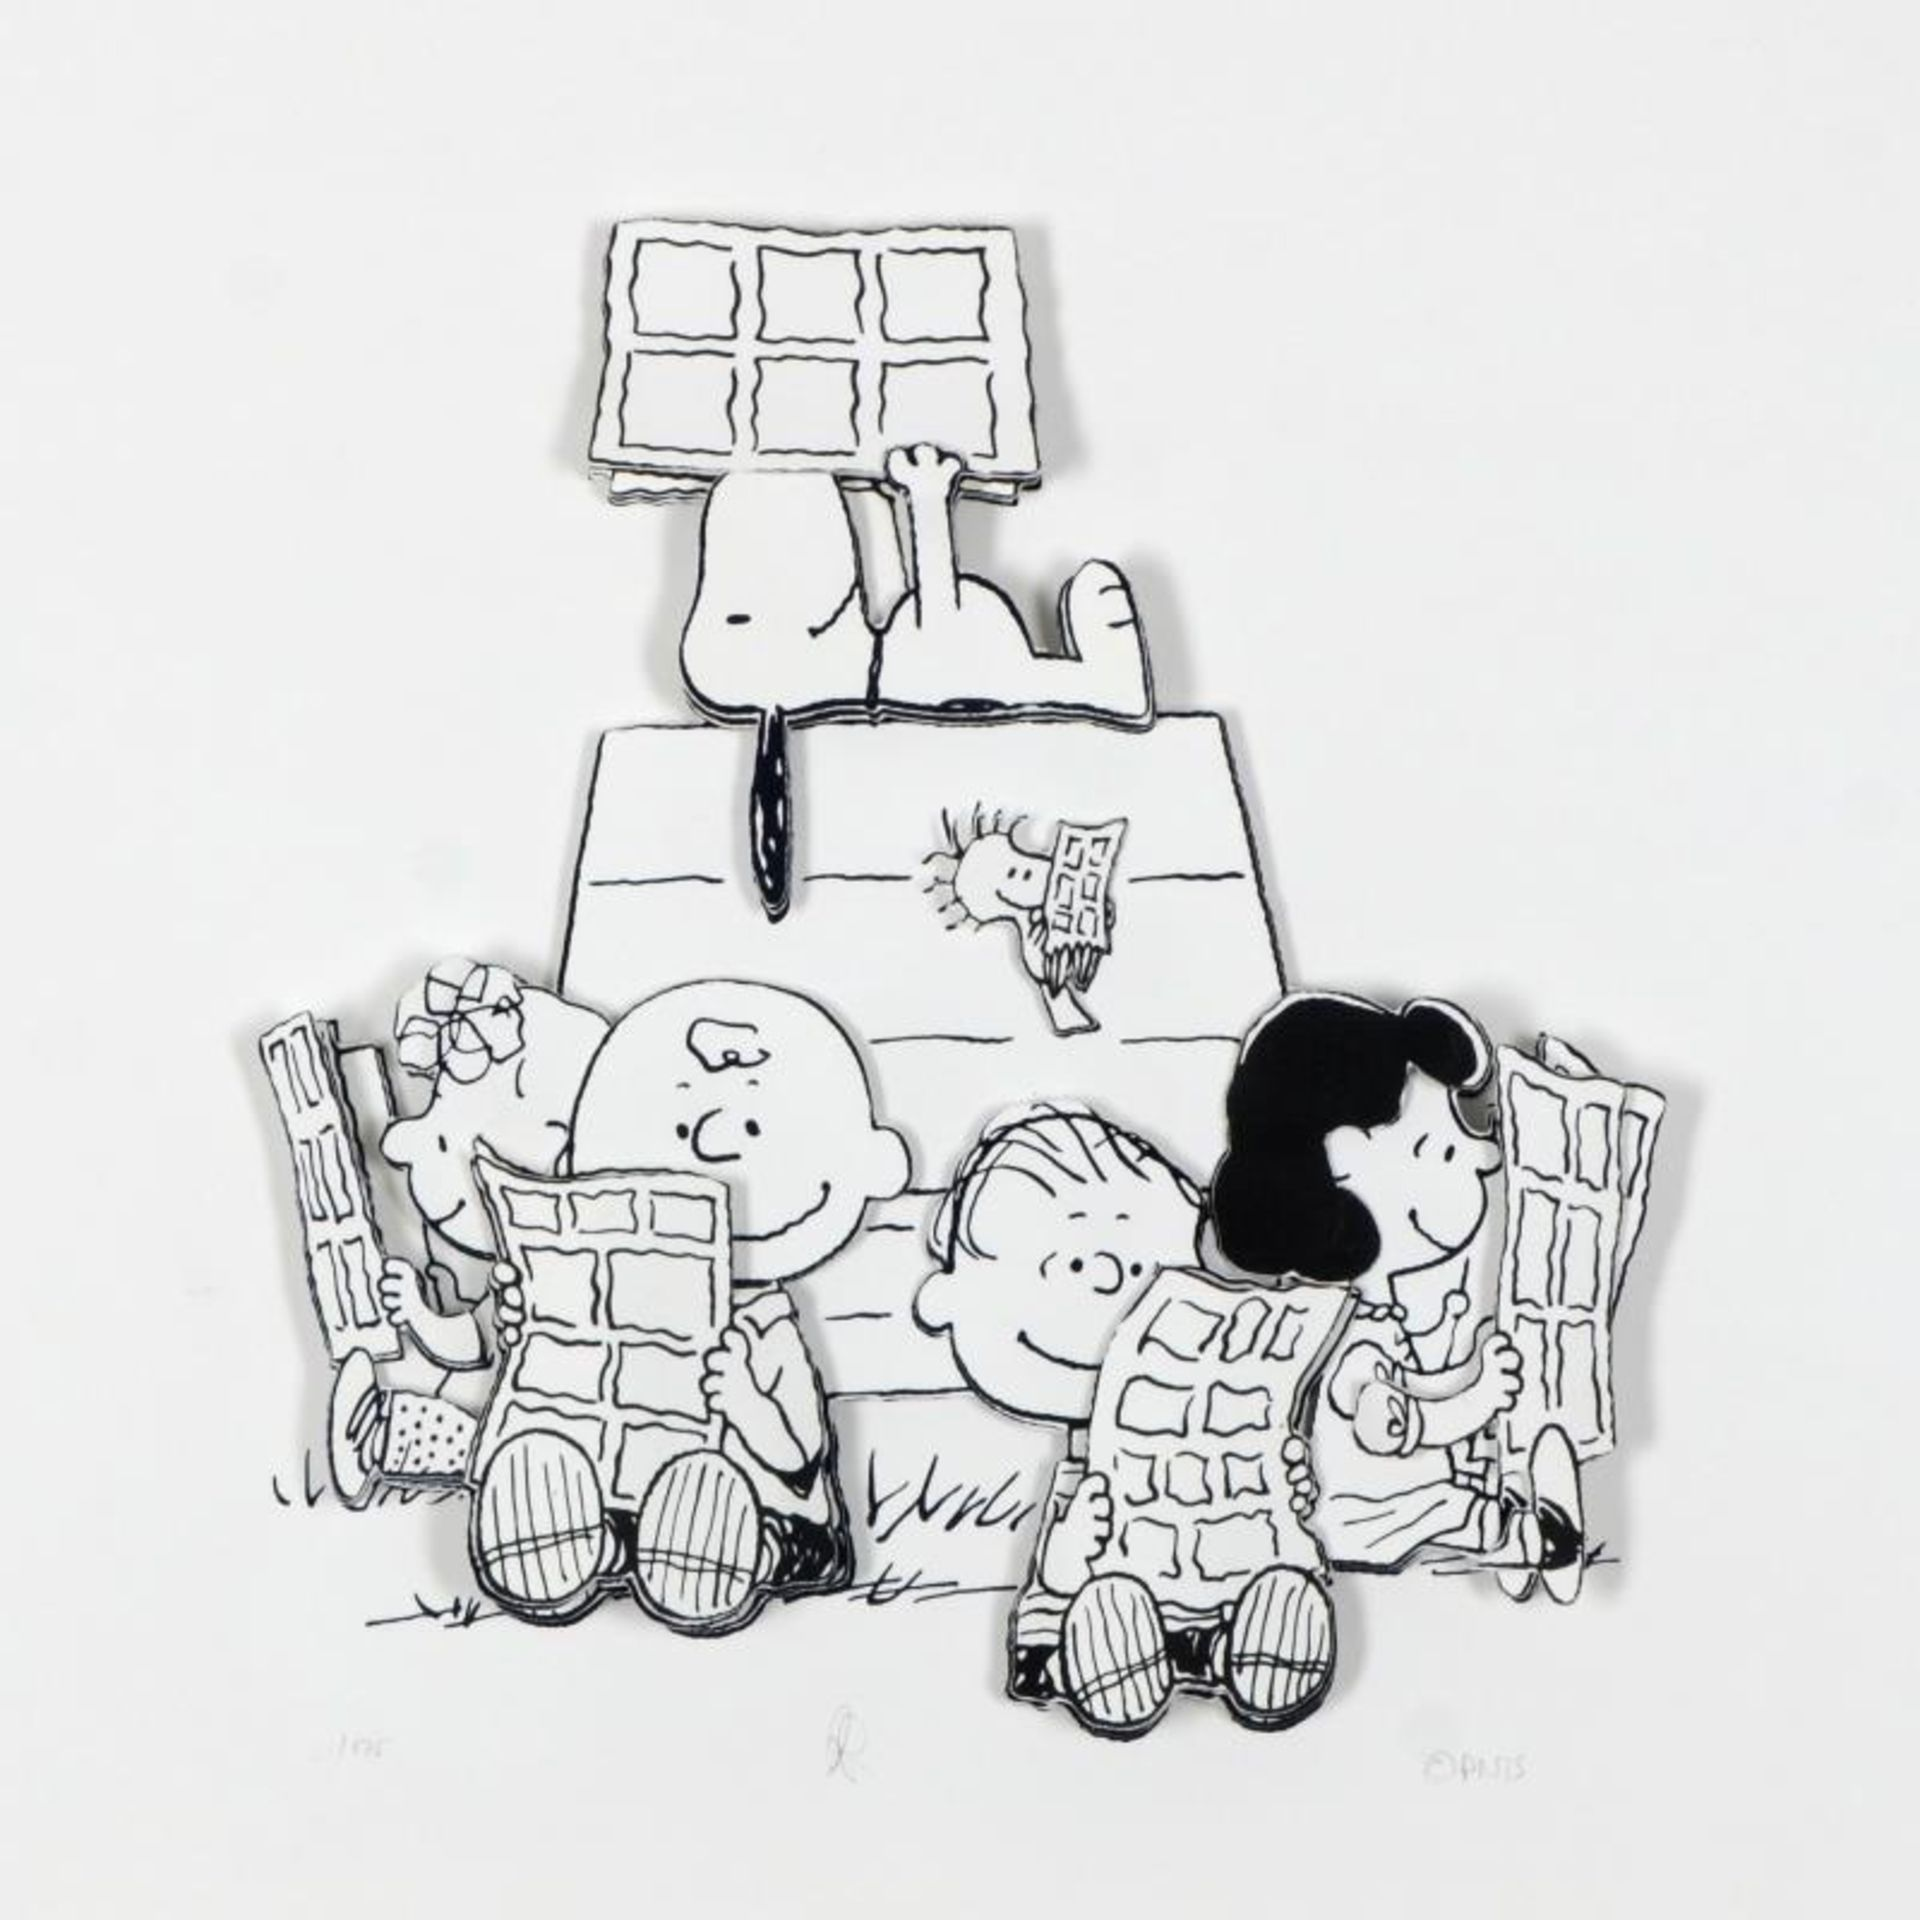 Down Time by Peanuts - Image 2 of 4